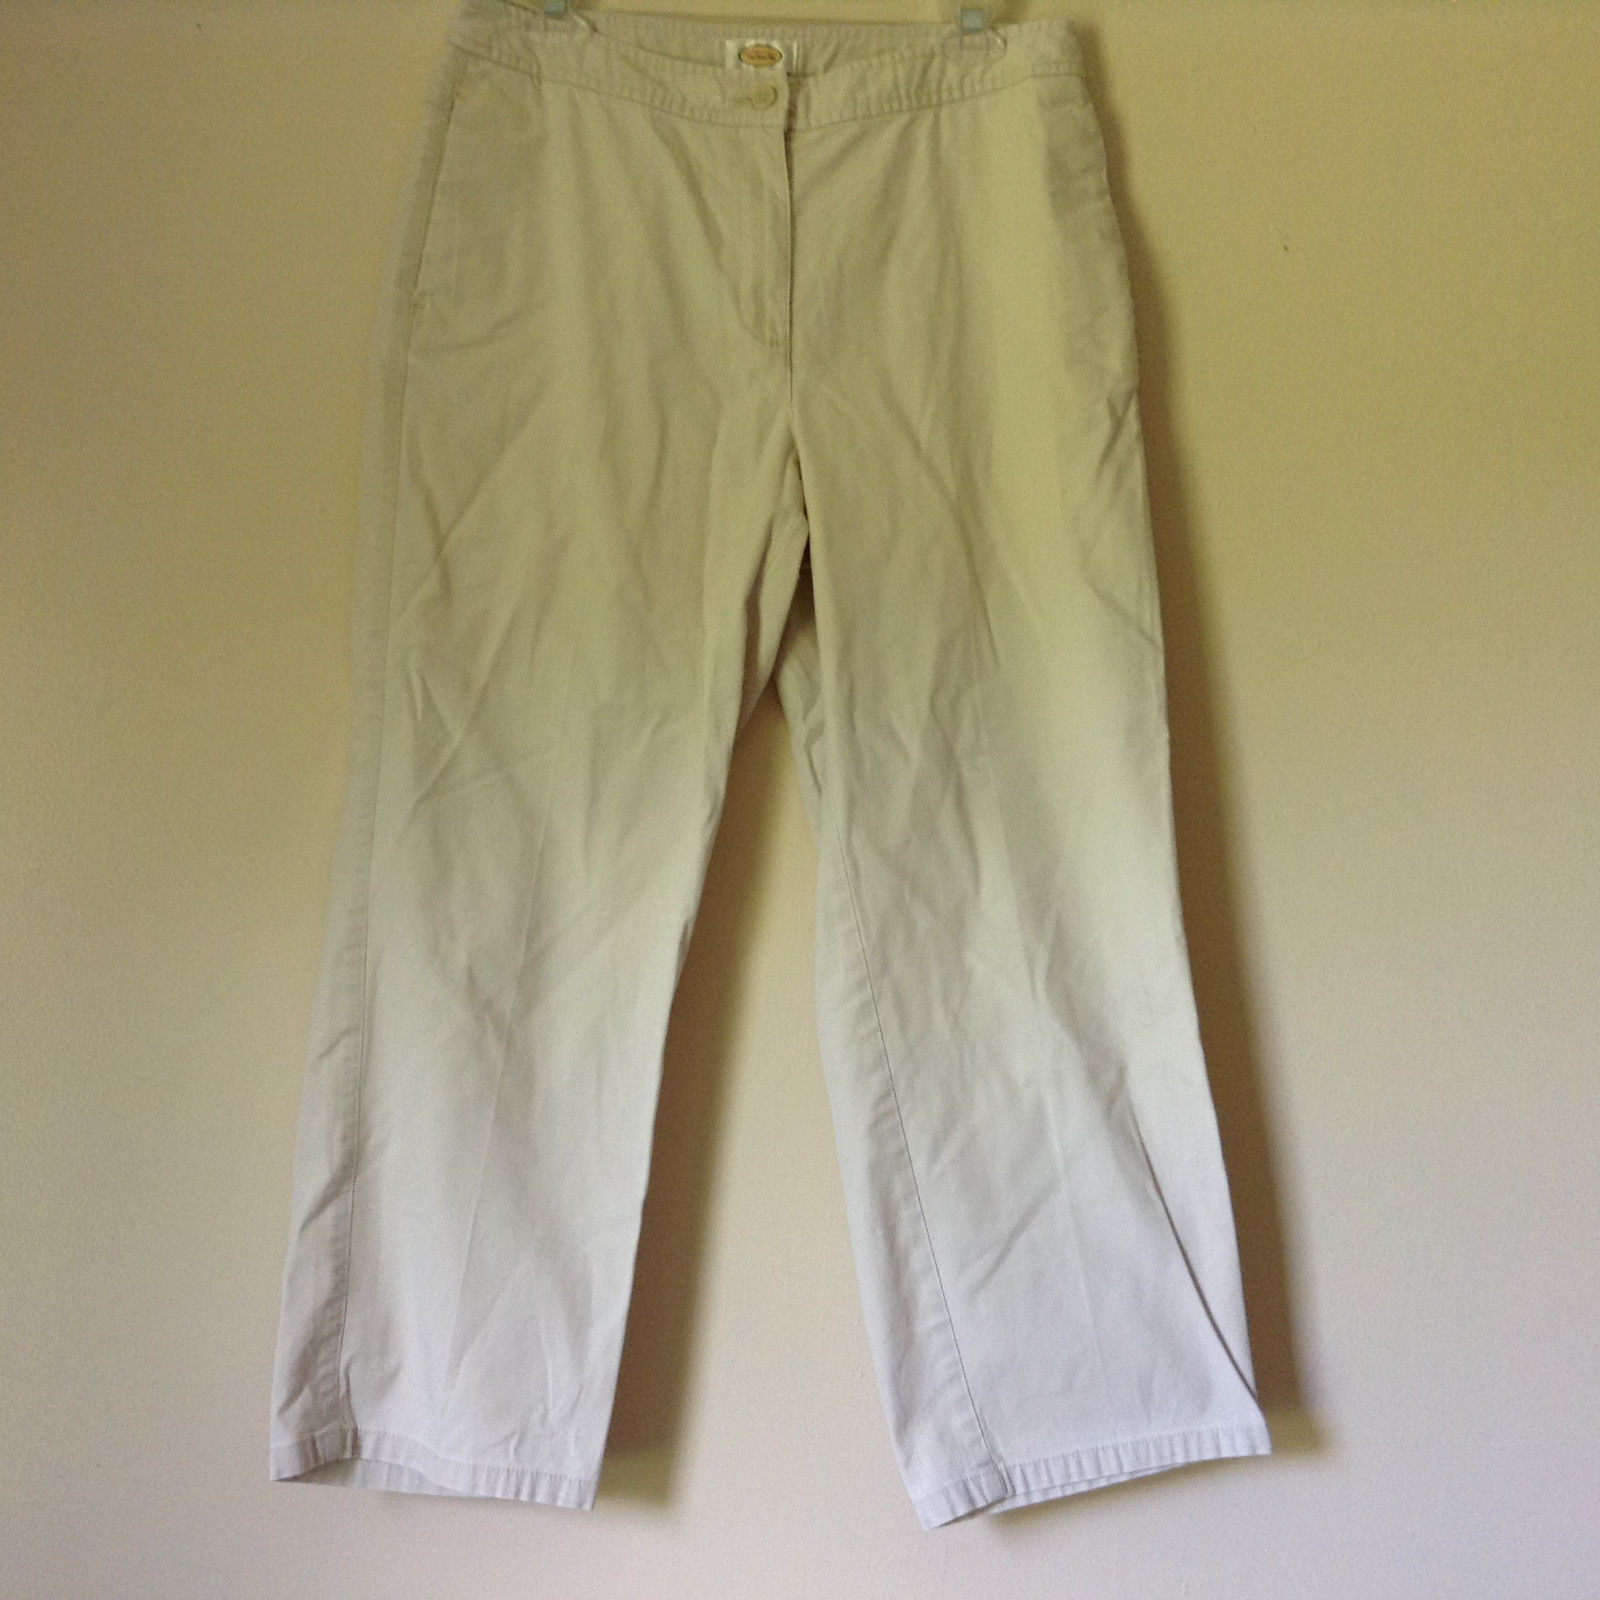 Talbots White Pants 2 Pockets 96 Percent Cotton 4 Percent Lycra Spandex Size 121